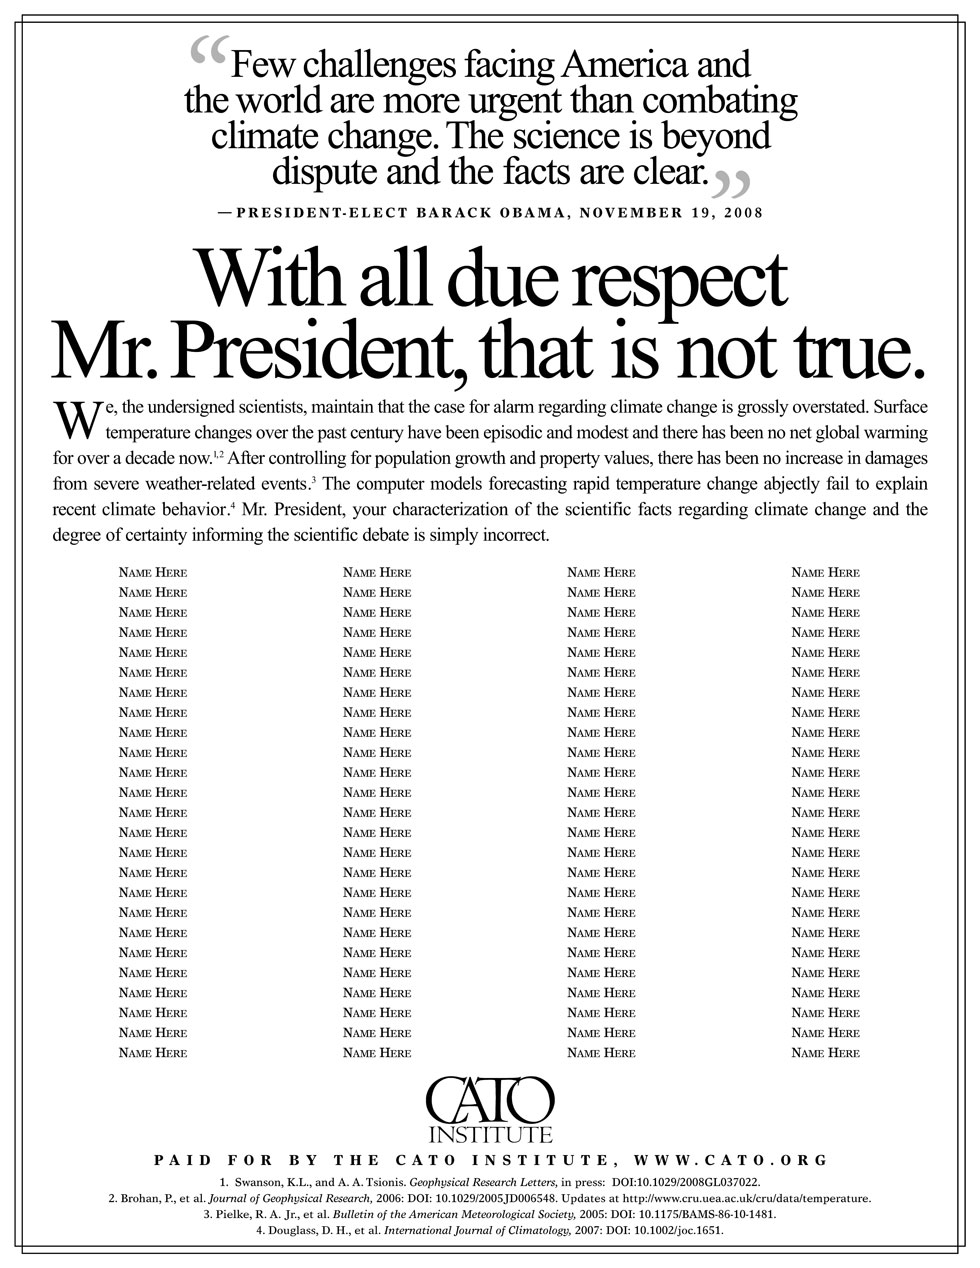 CATO Institute: With All Due Respect